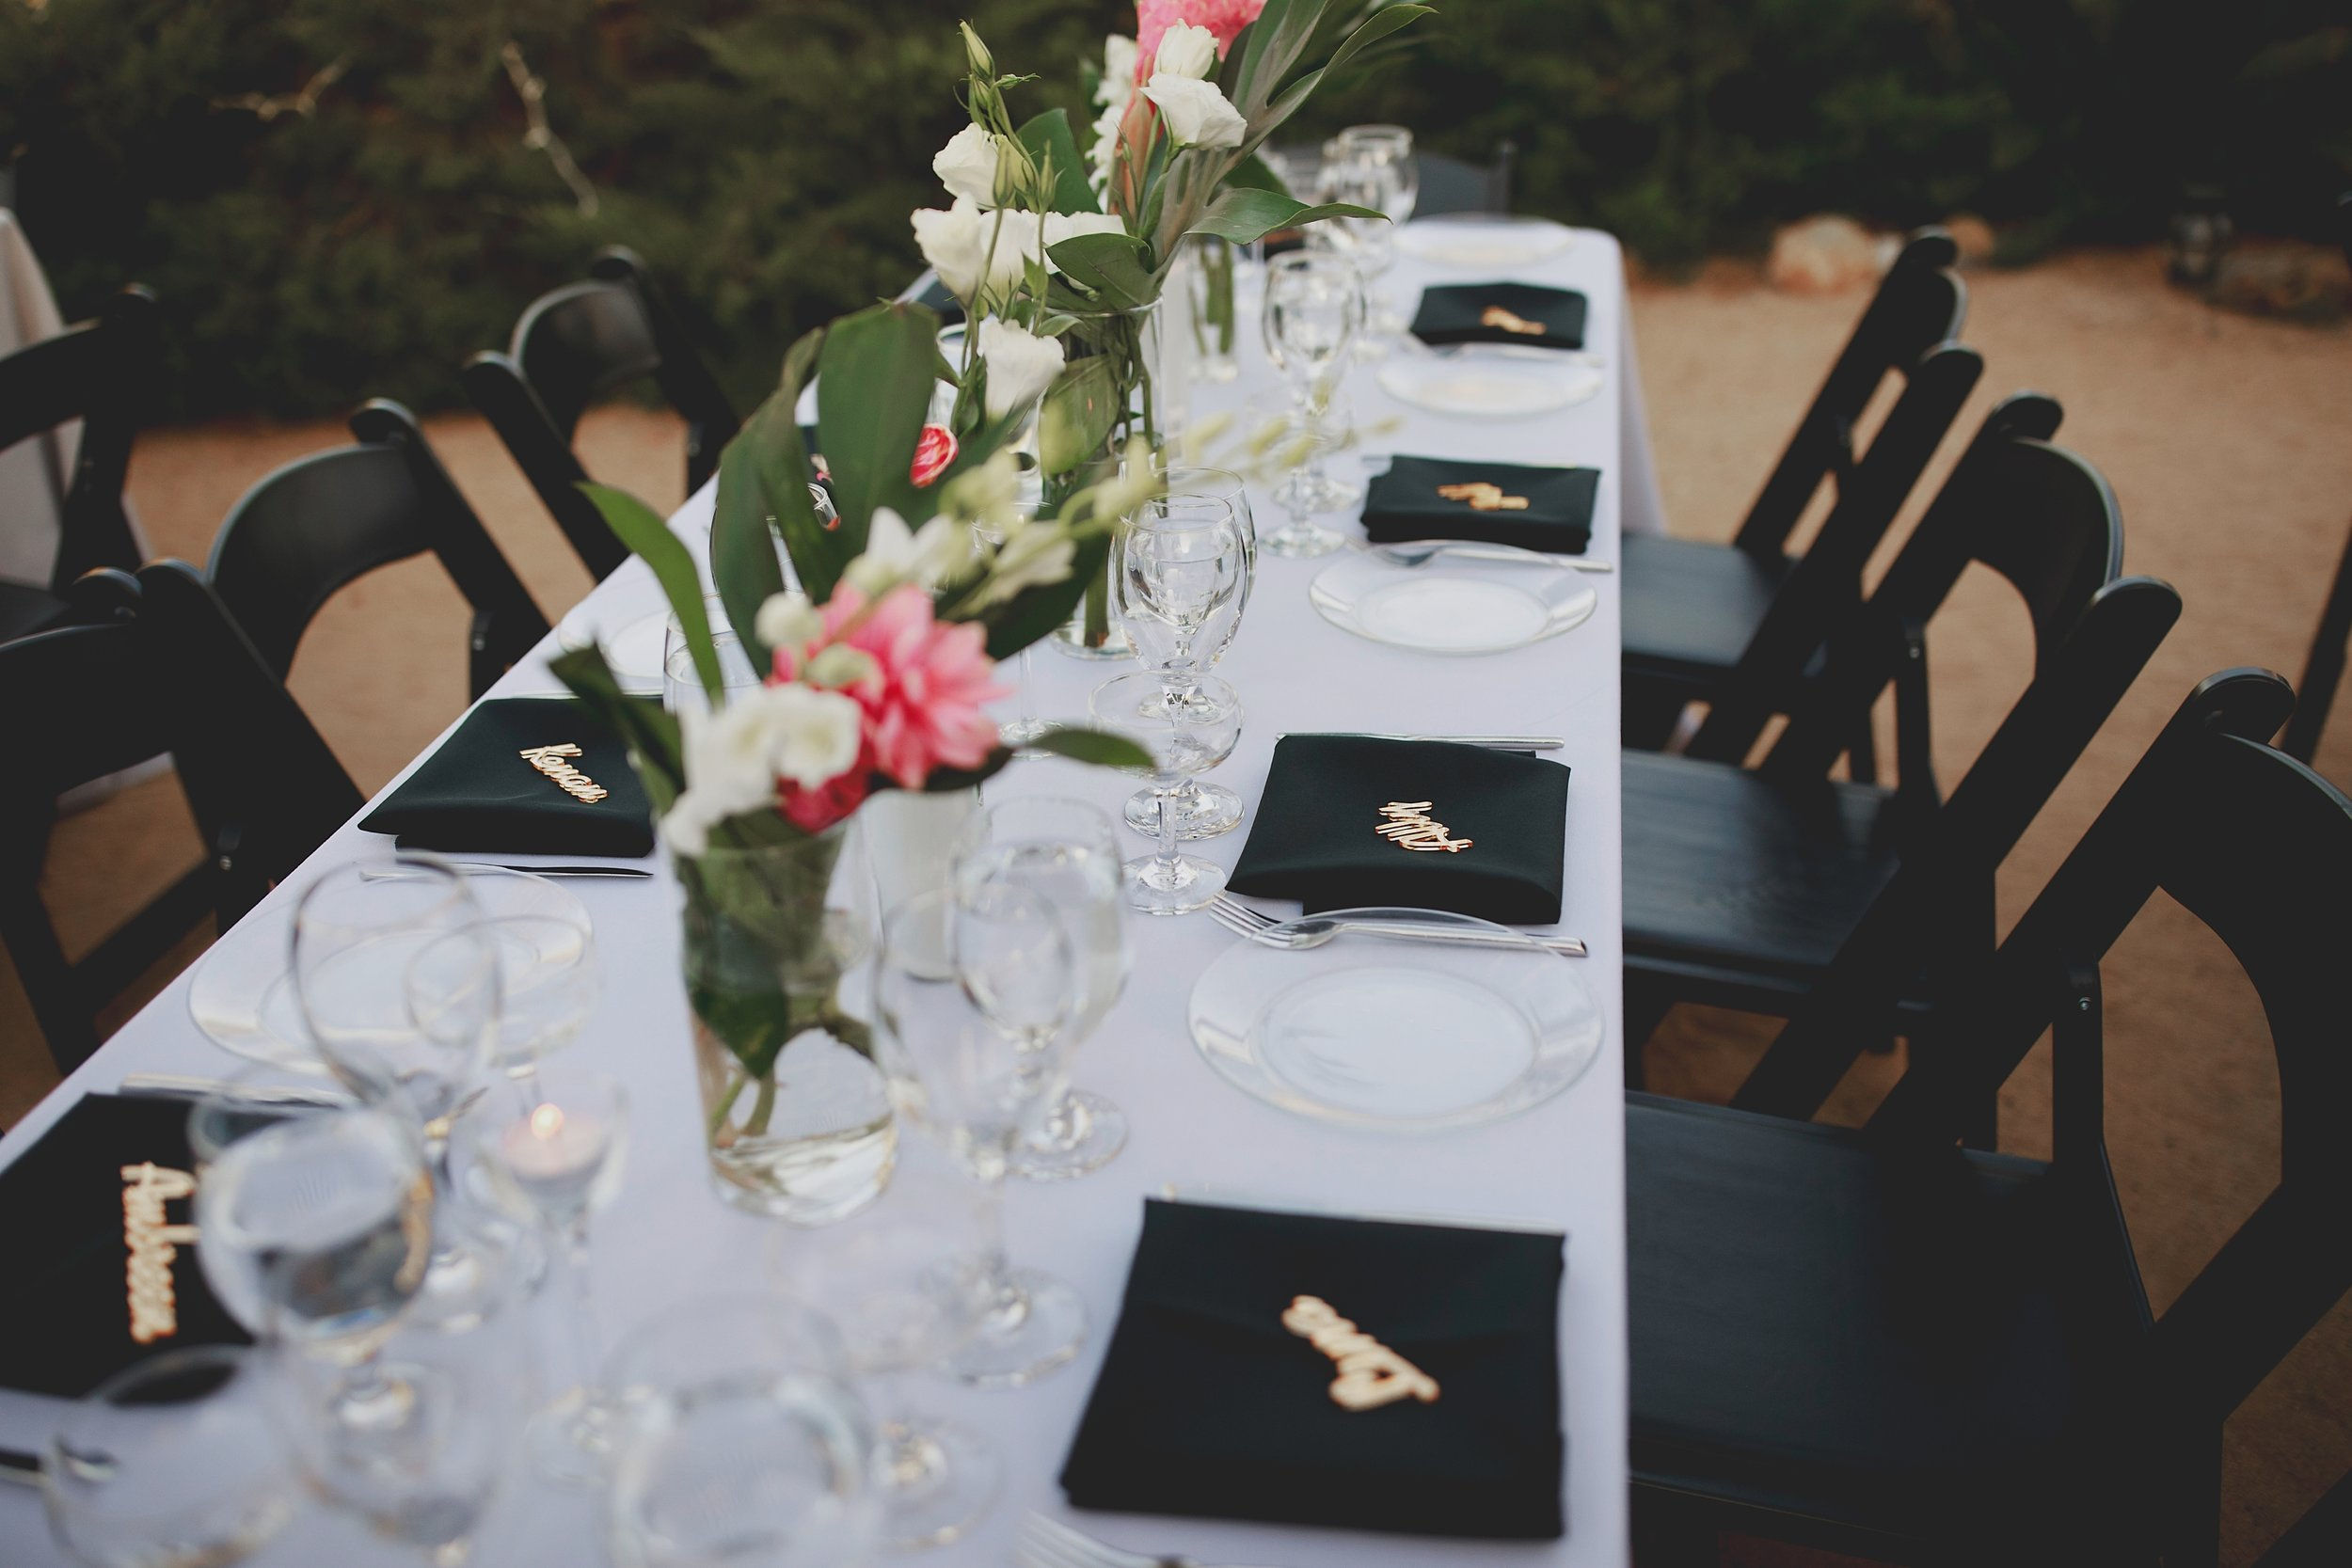 amanda_vanvels_joshua_tree_inn_wedding_105.jpg